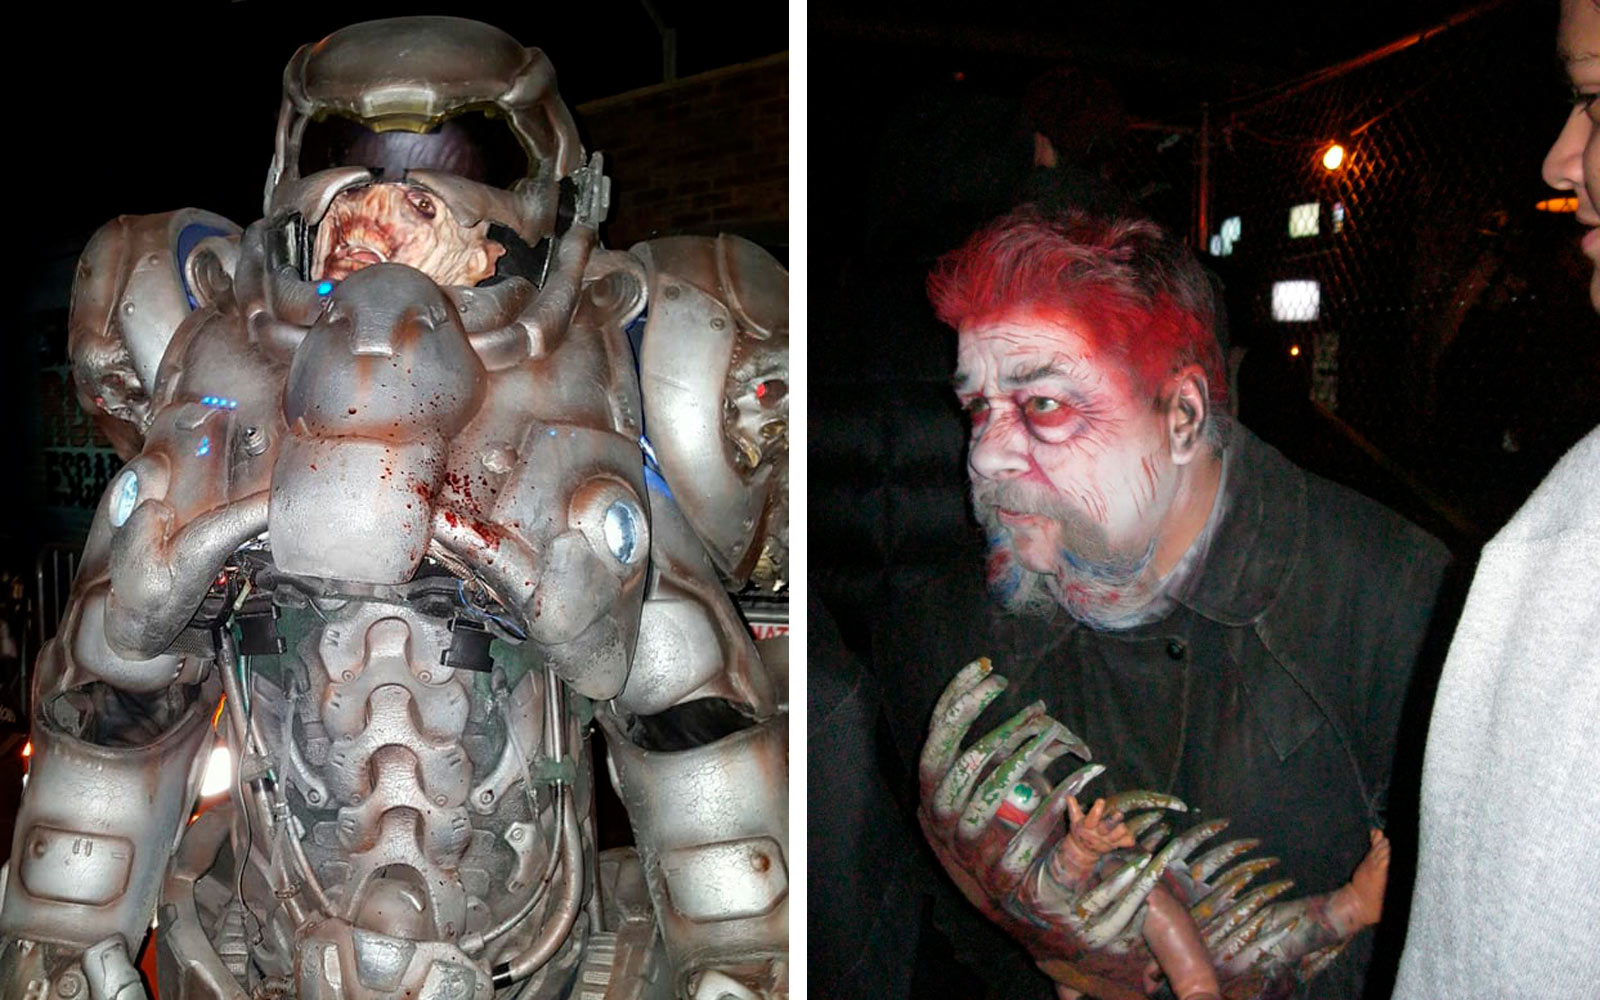 House of Torment, Morton Grove, Illinois